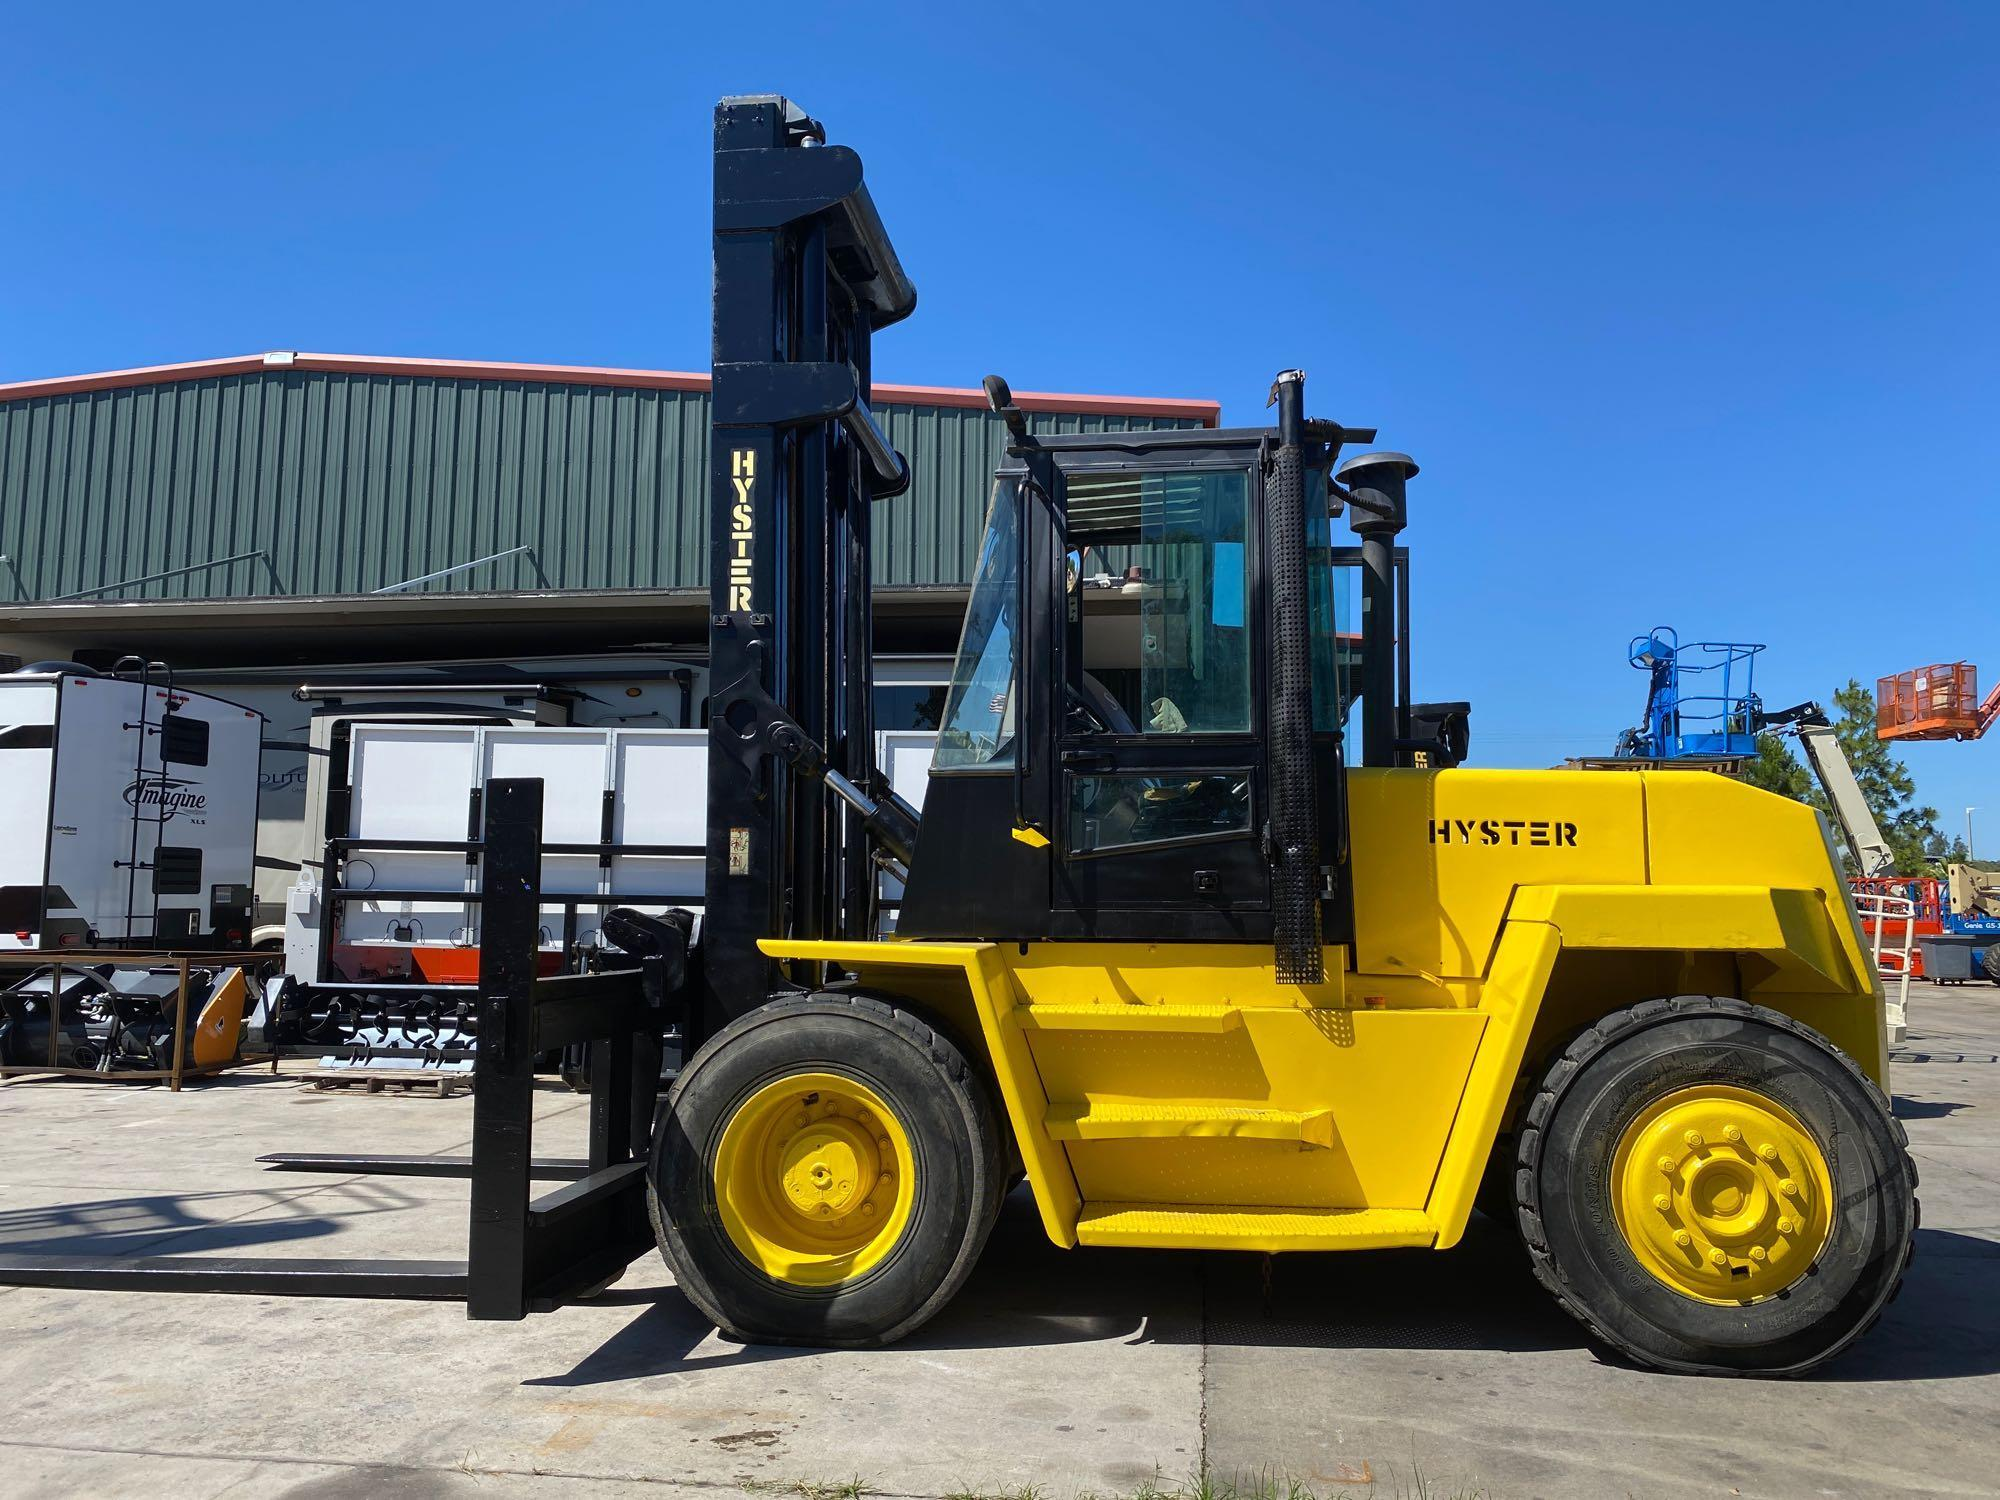 """HYSTER DIESEL FORKLIFT MODEL H190XL2, APPROX. 19,000 LB CAPACITY, 212.6"""" HEIGHT CAPACITY, RUNS AND O - Image 2 of 12"""